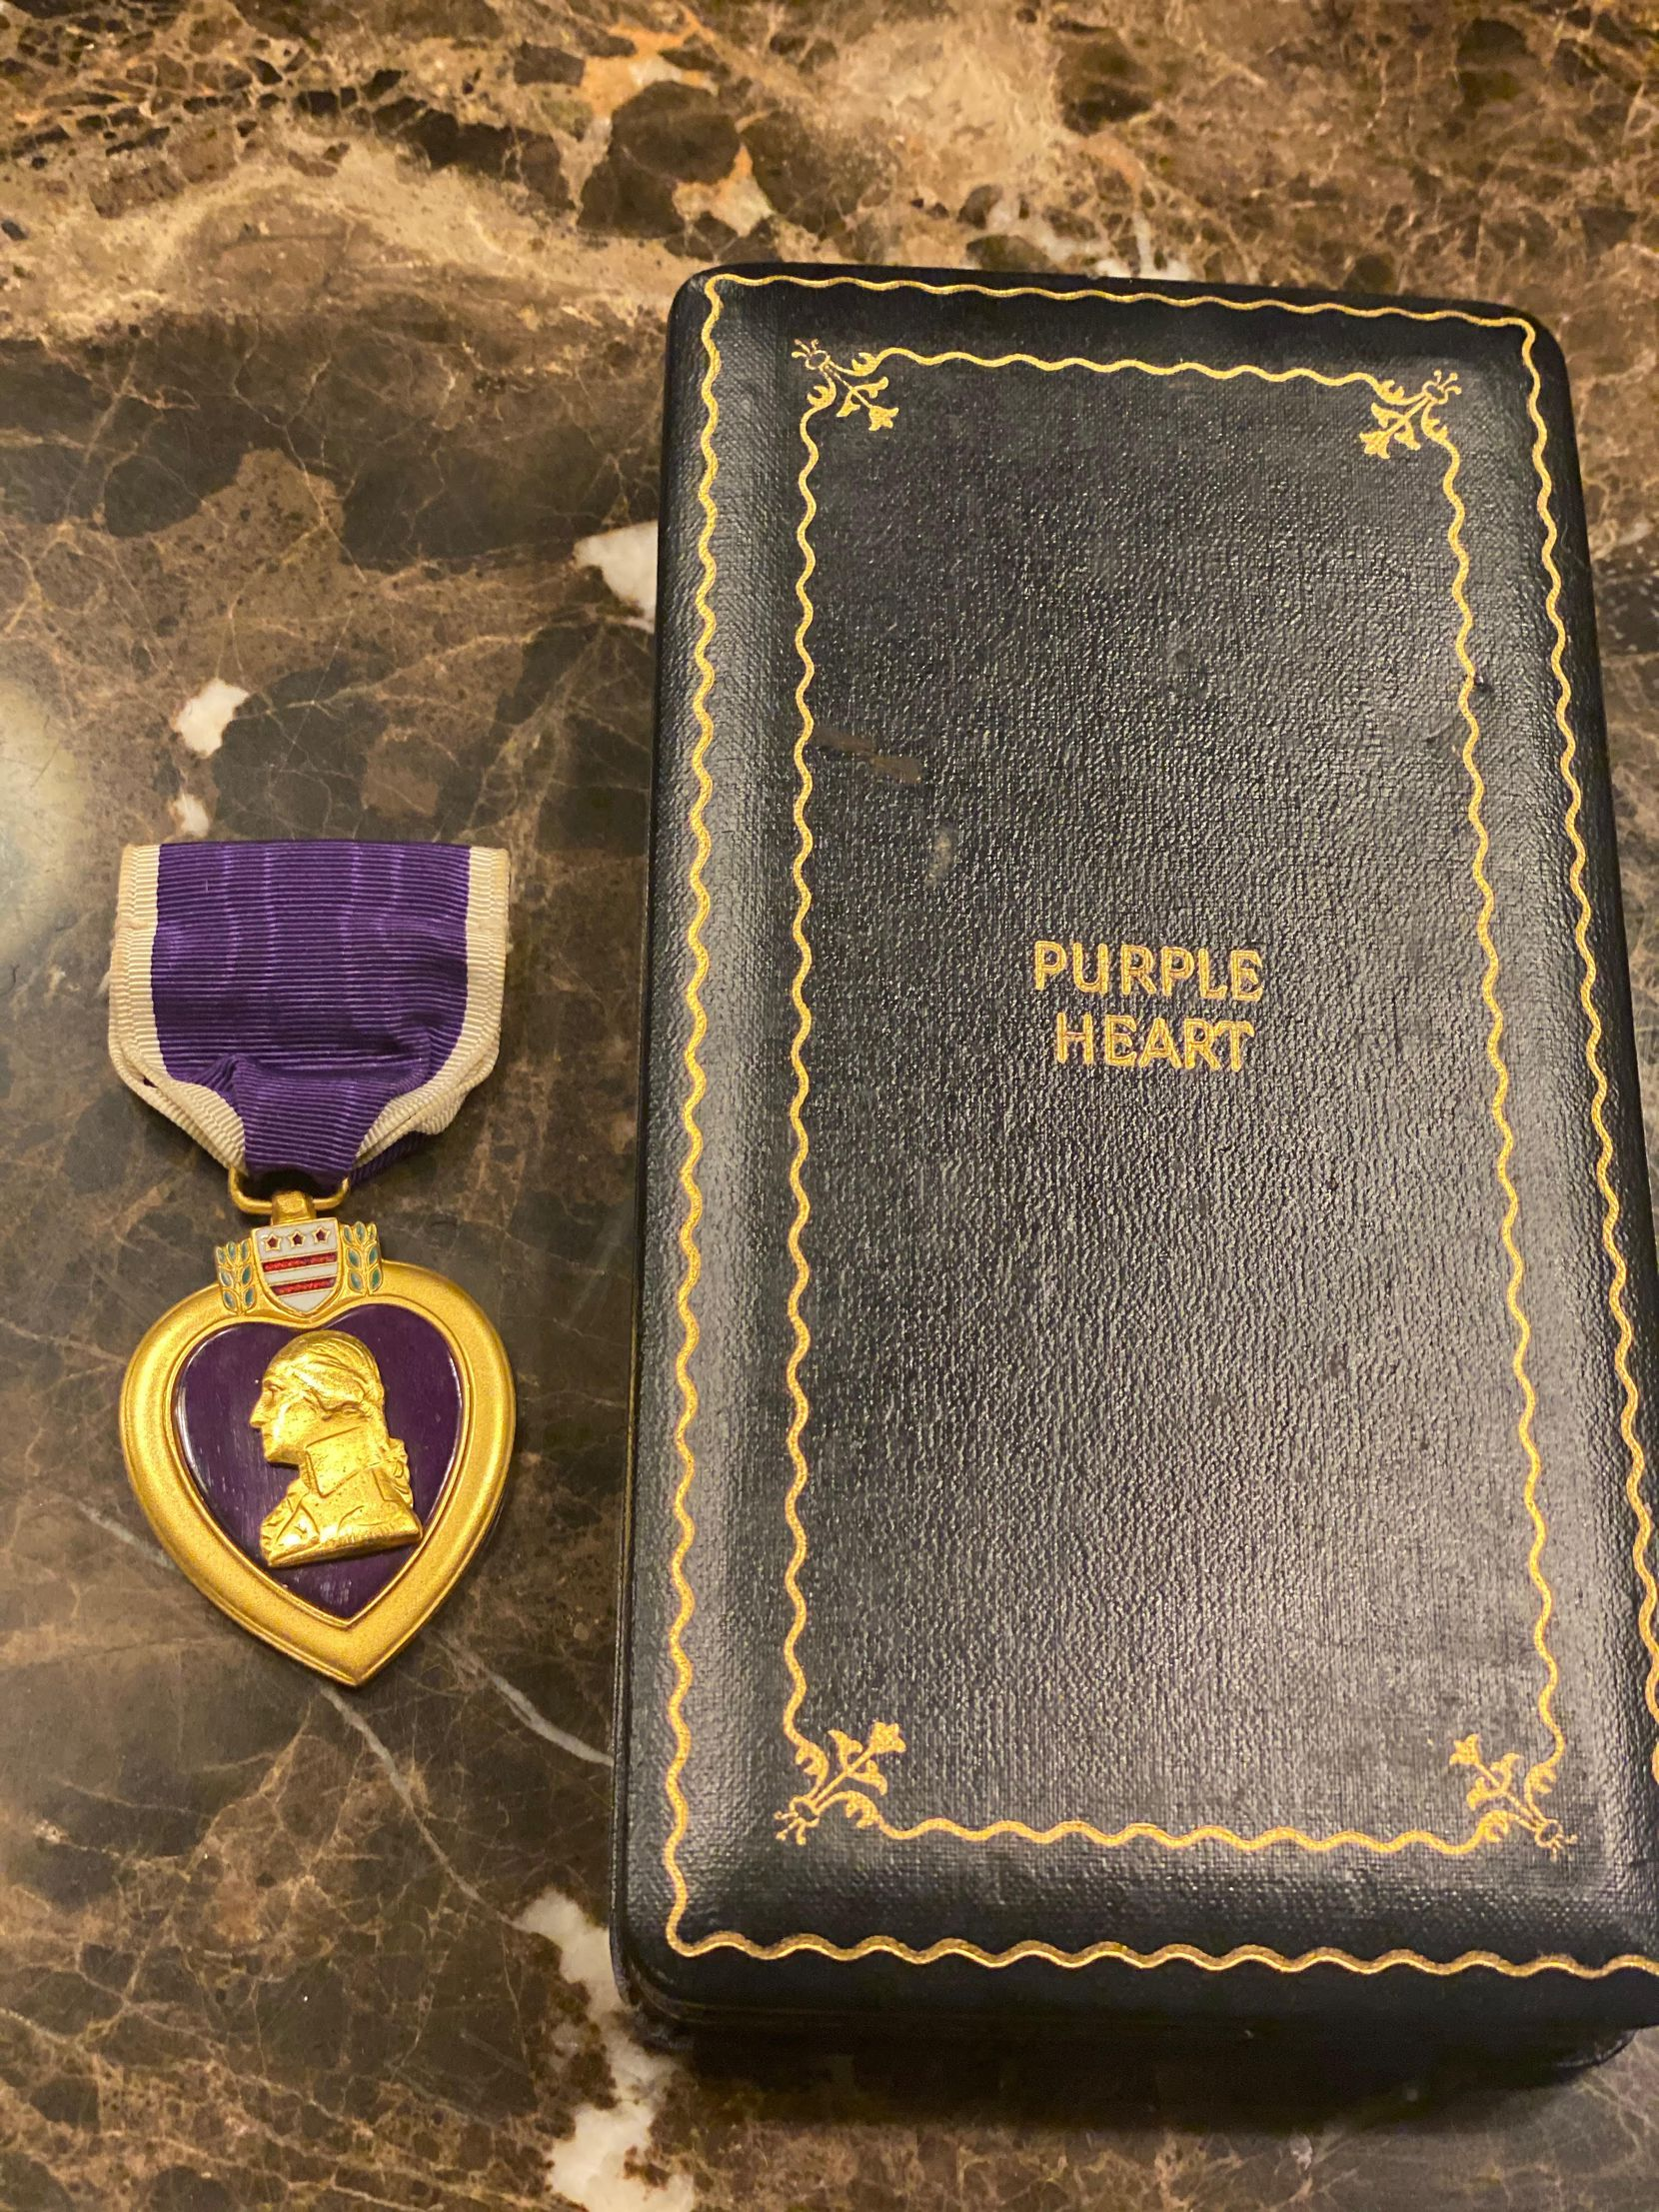 The Purple Heart medal that was given to Cowboys defensive end Aldon Smith.